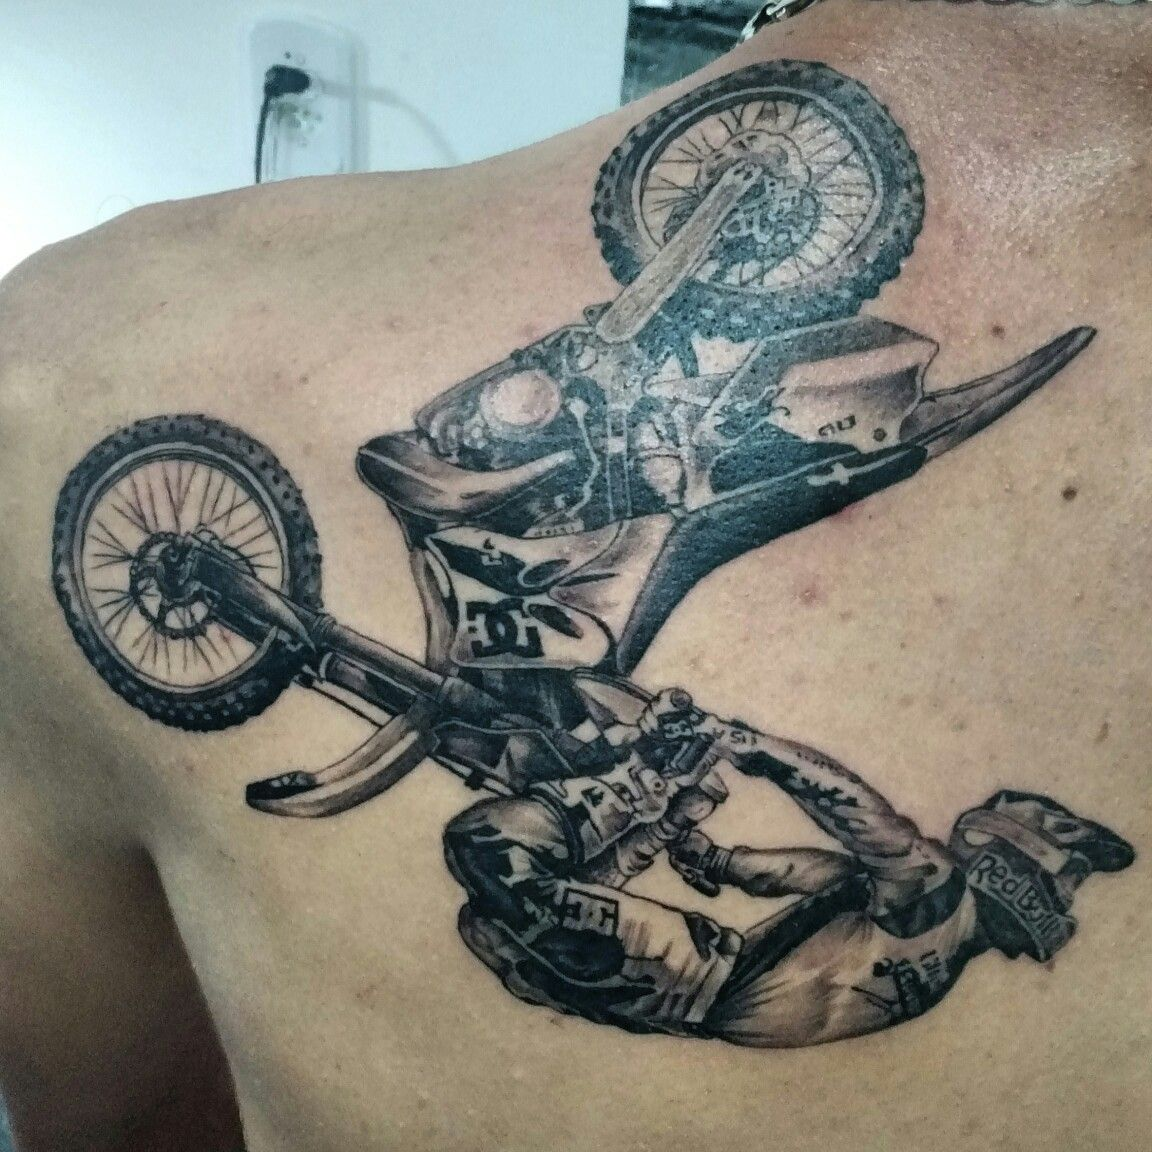 tattoo realista motocross arte real pinterest motocross y tatuajes. Black Bedroom Furniture Sets. Home Design Ideas